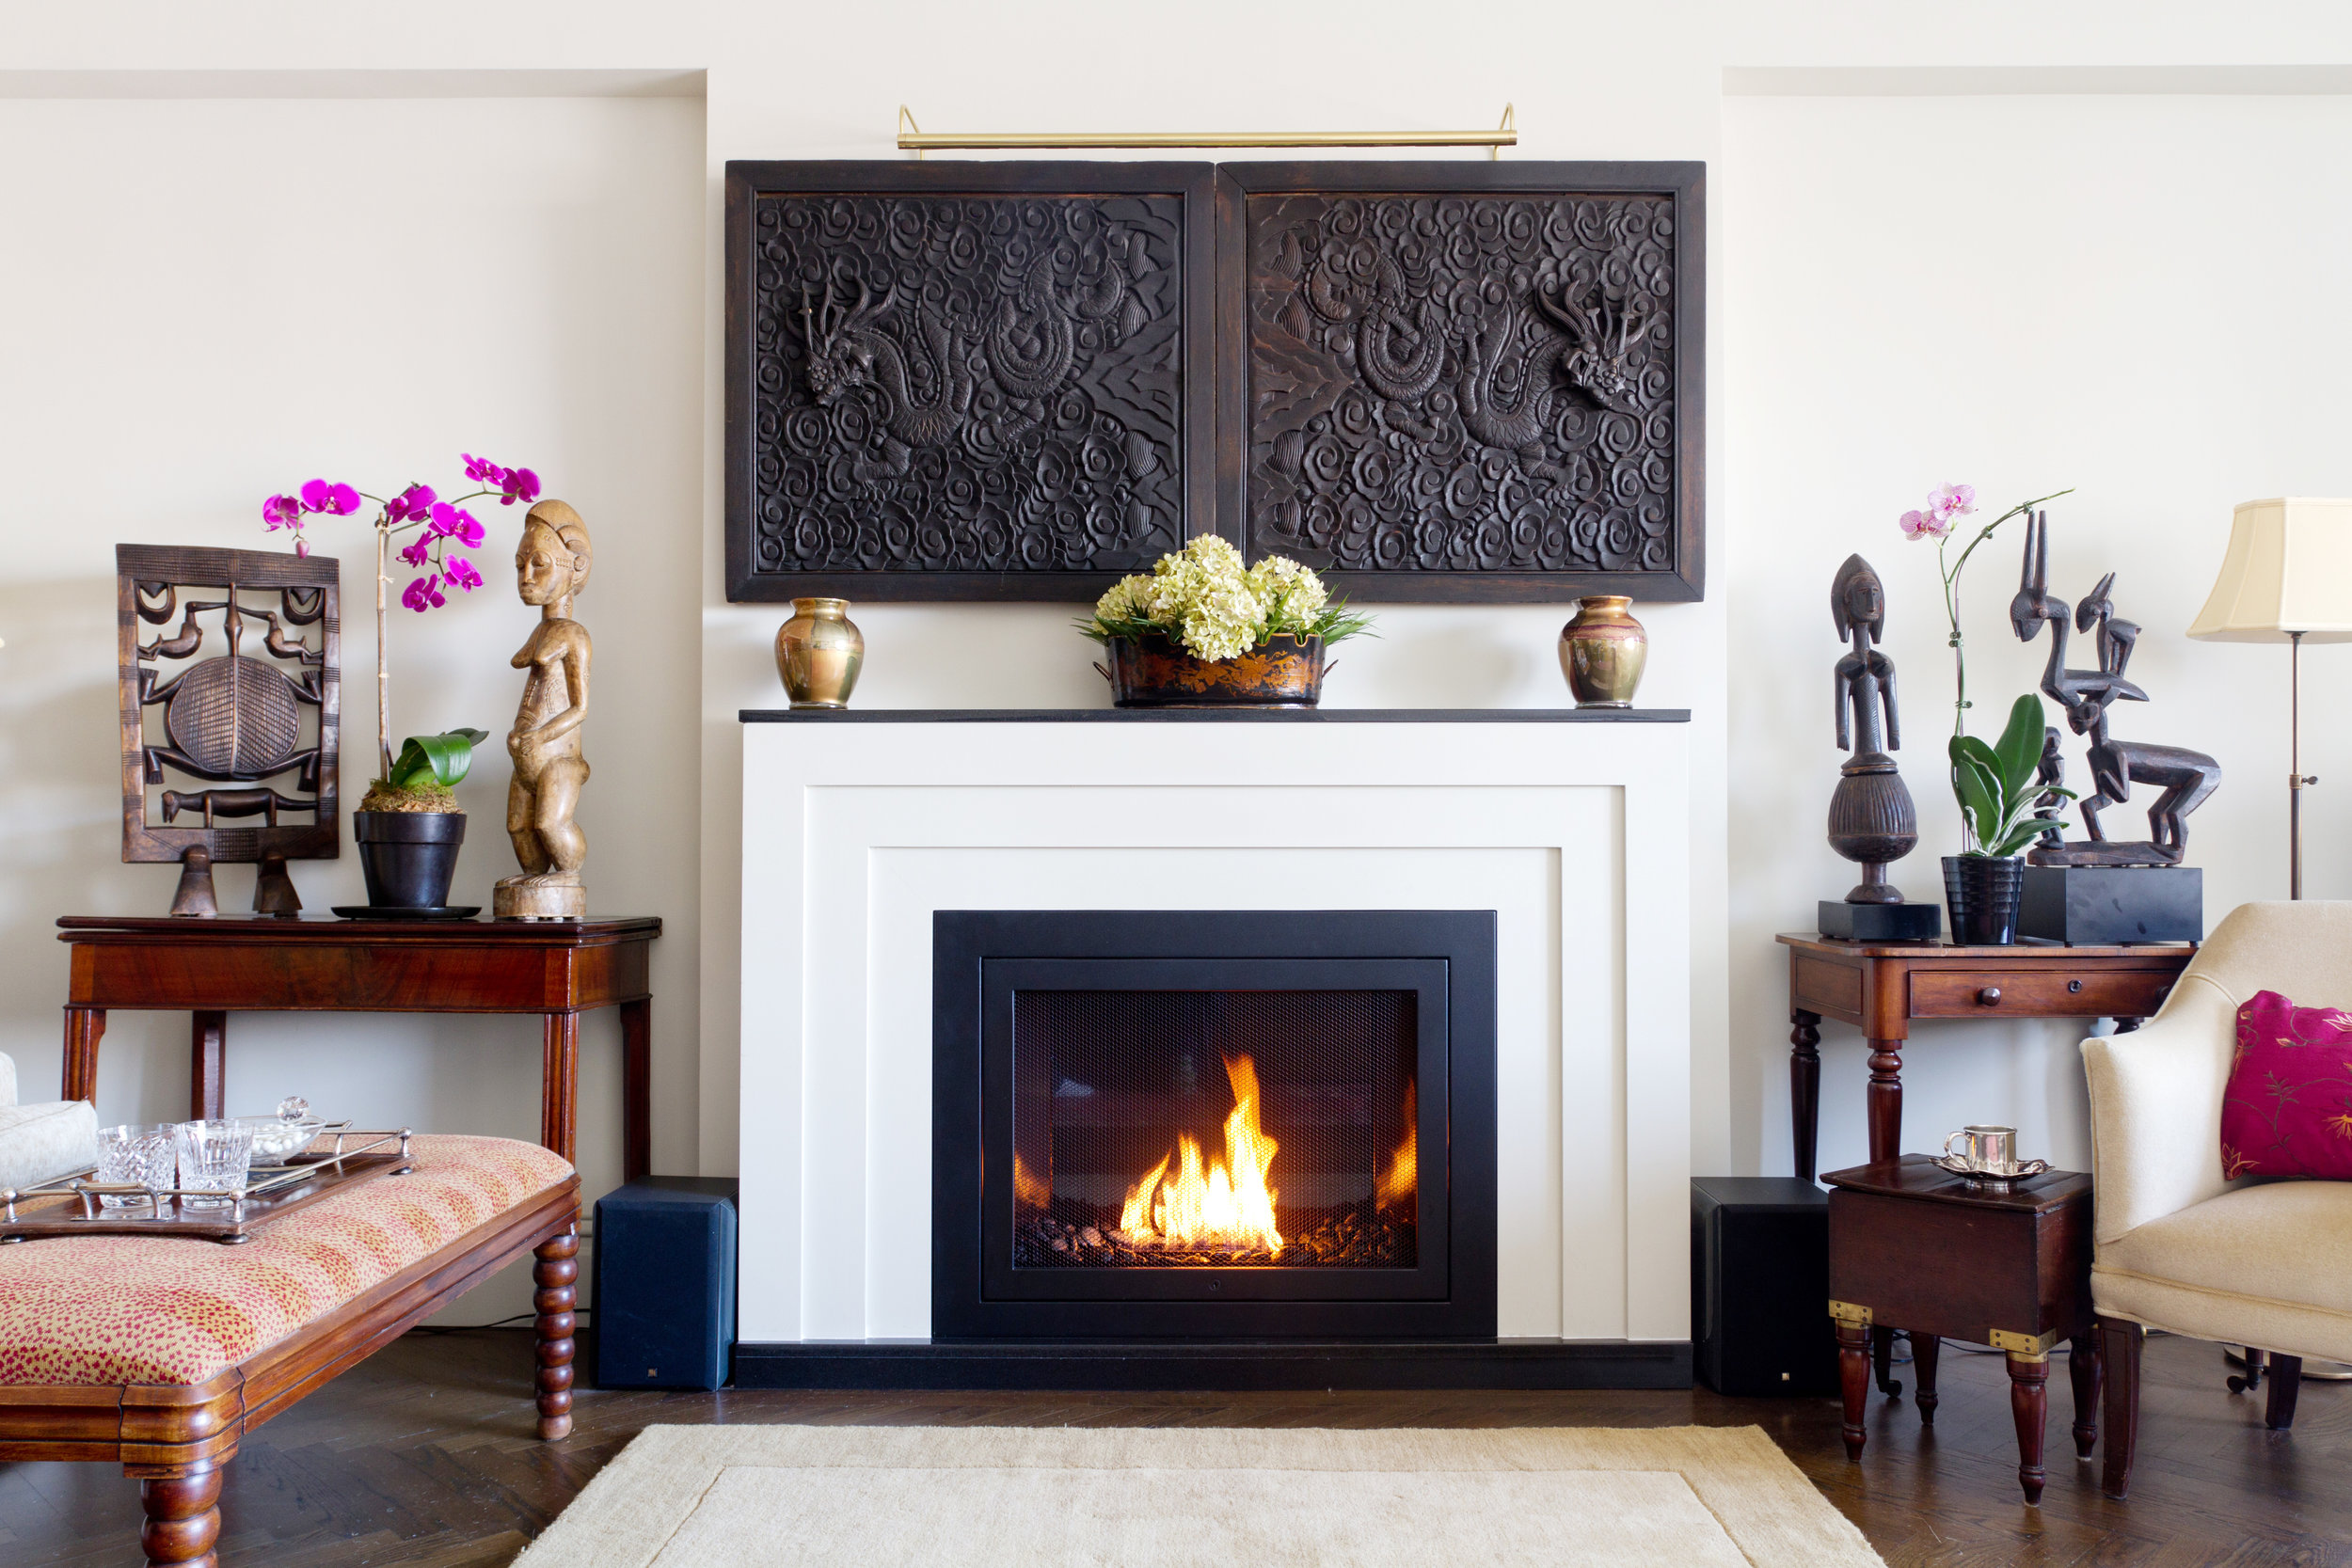 HearthCabinet Ventless Fireplaces - Central Park East.jpg